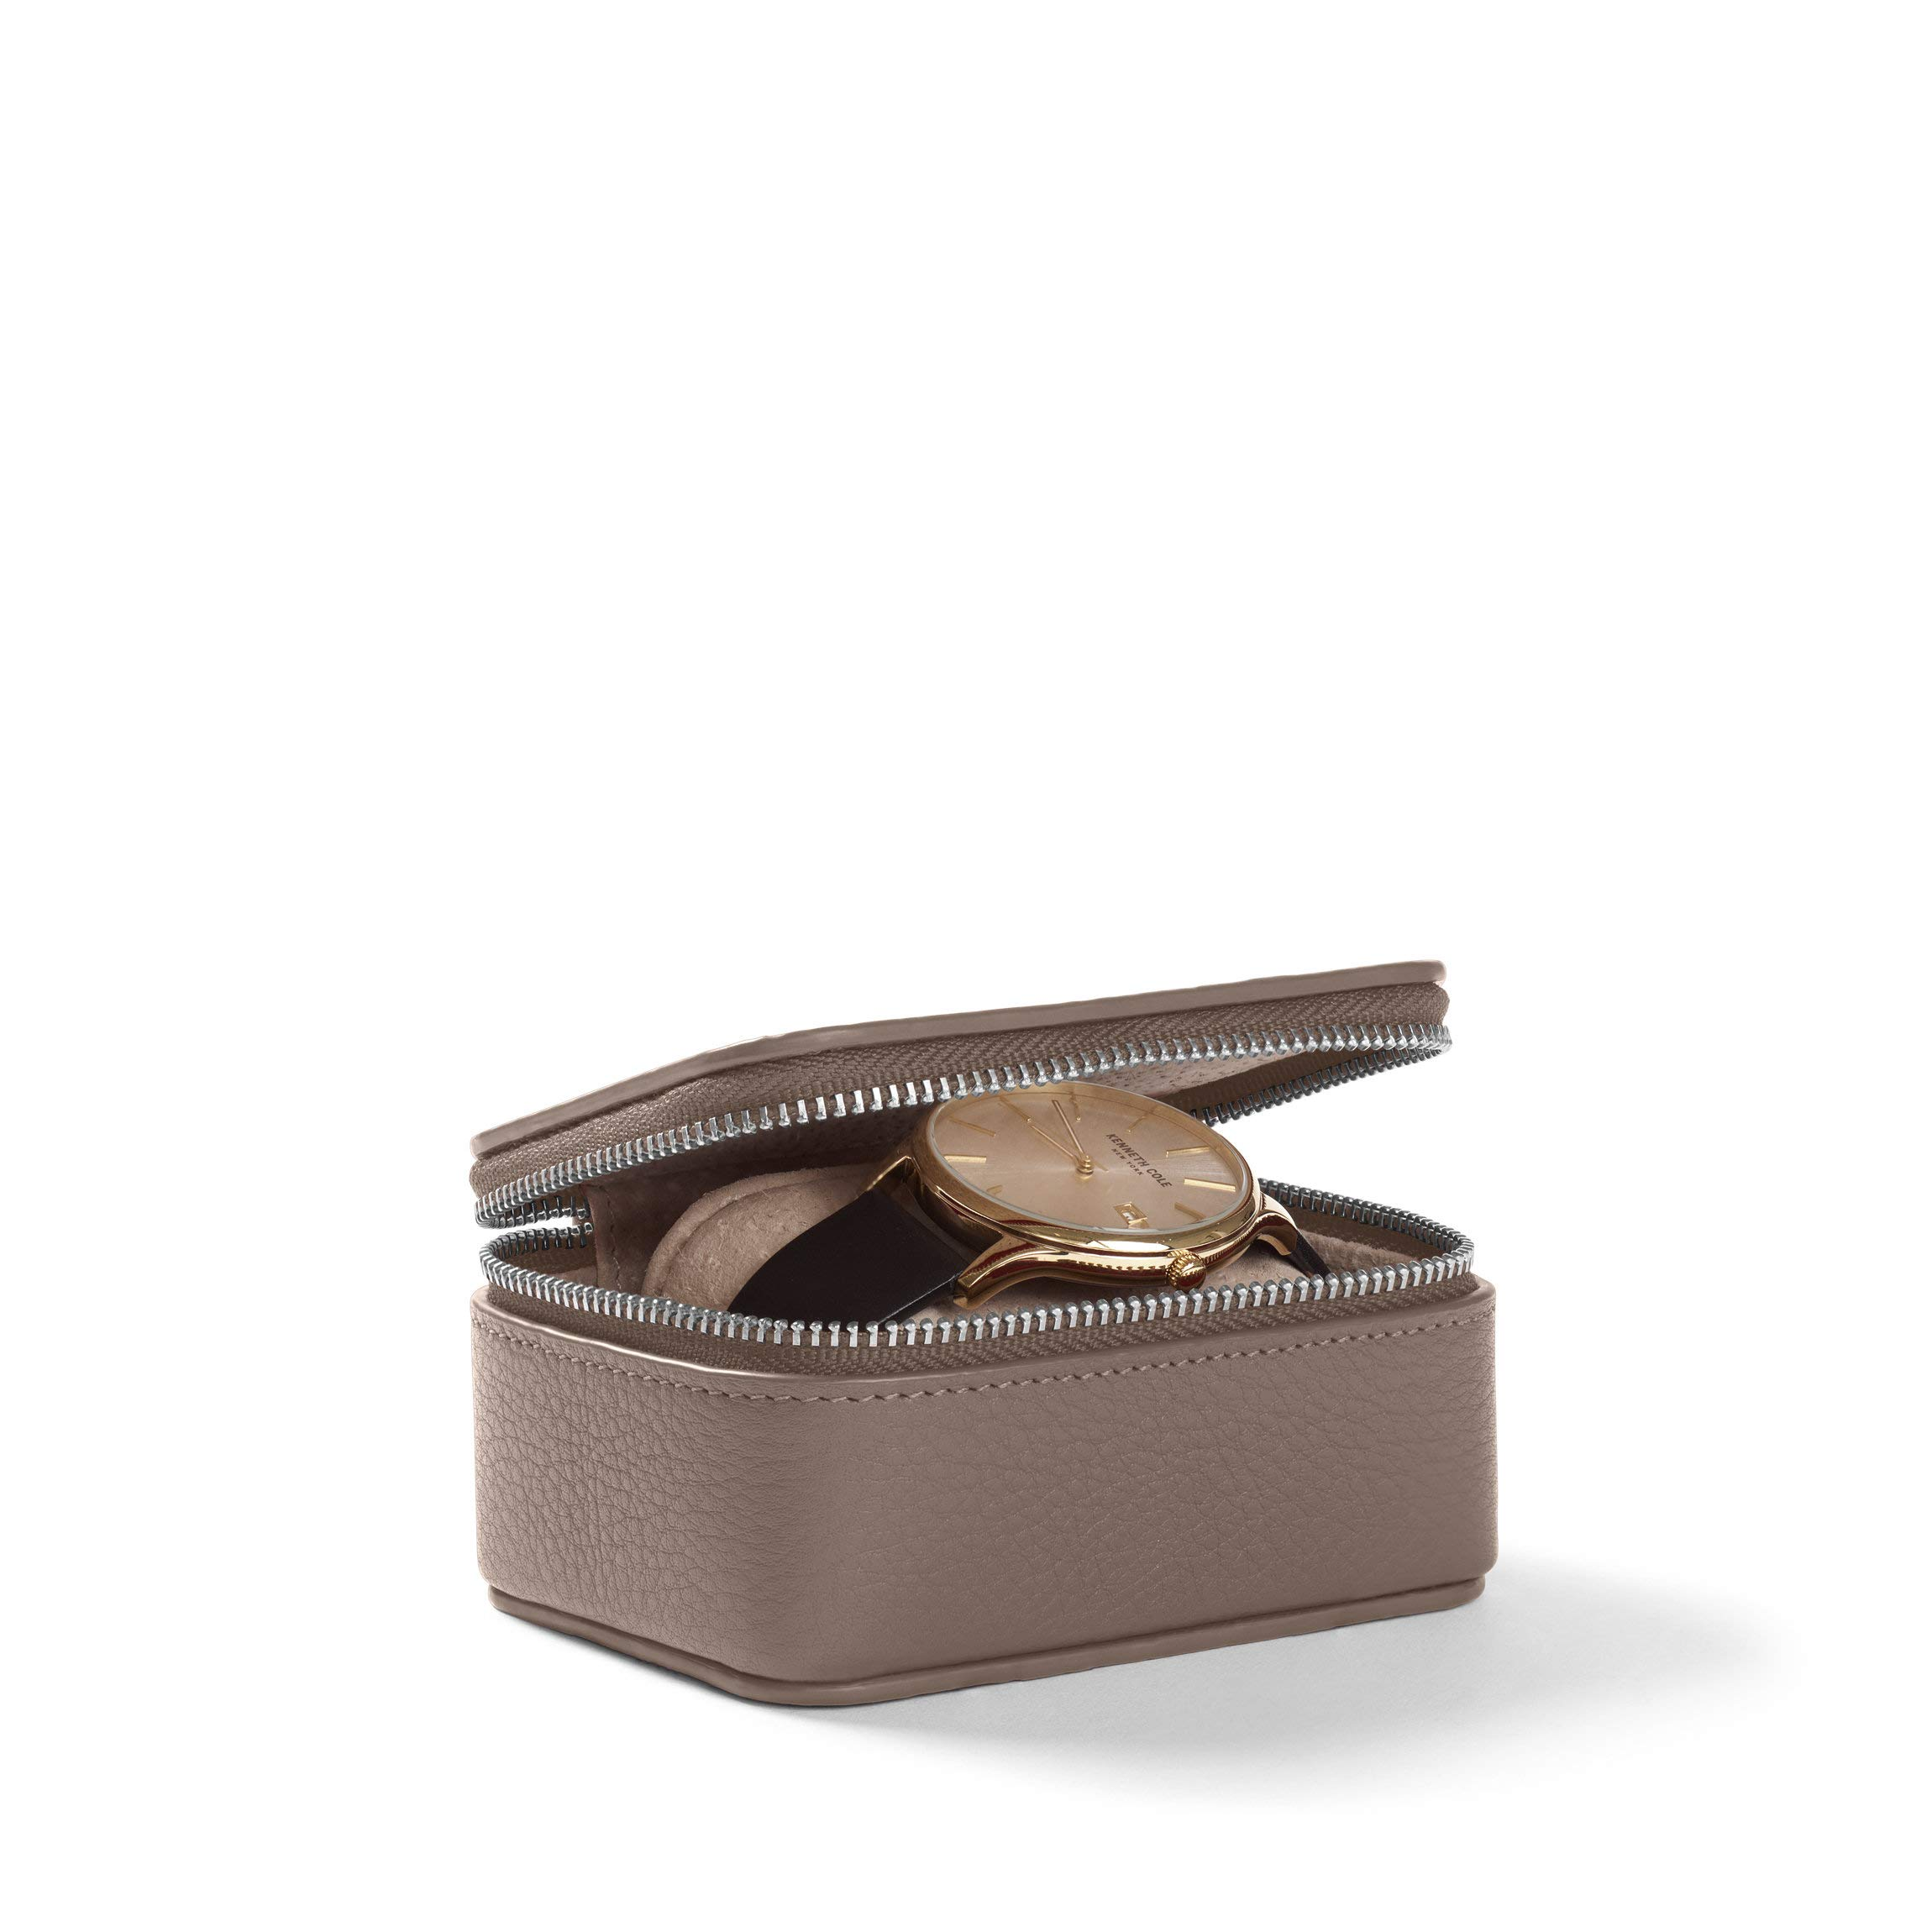 Travel Watch Box - Full Grain Leather Leather - Taupe (Beige)